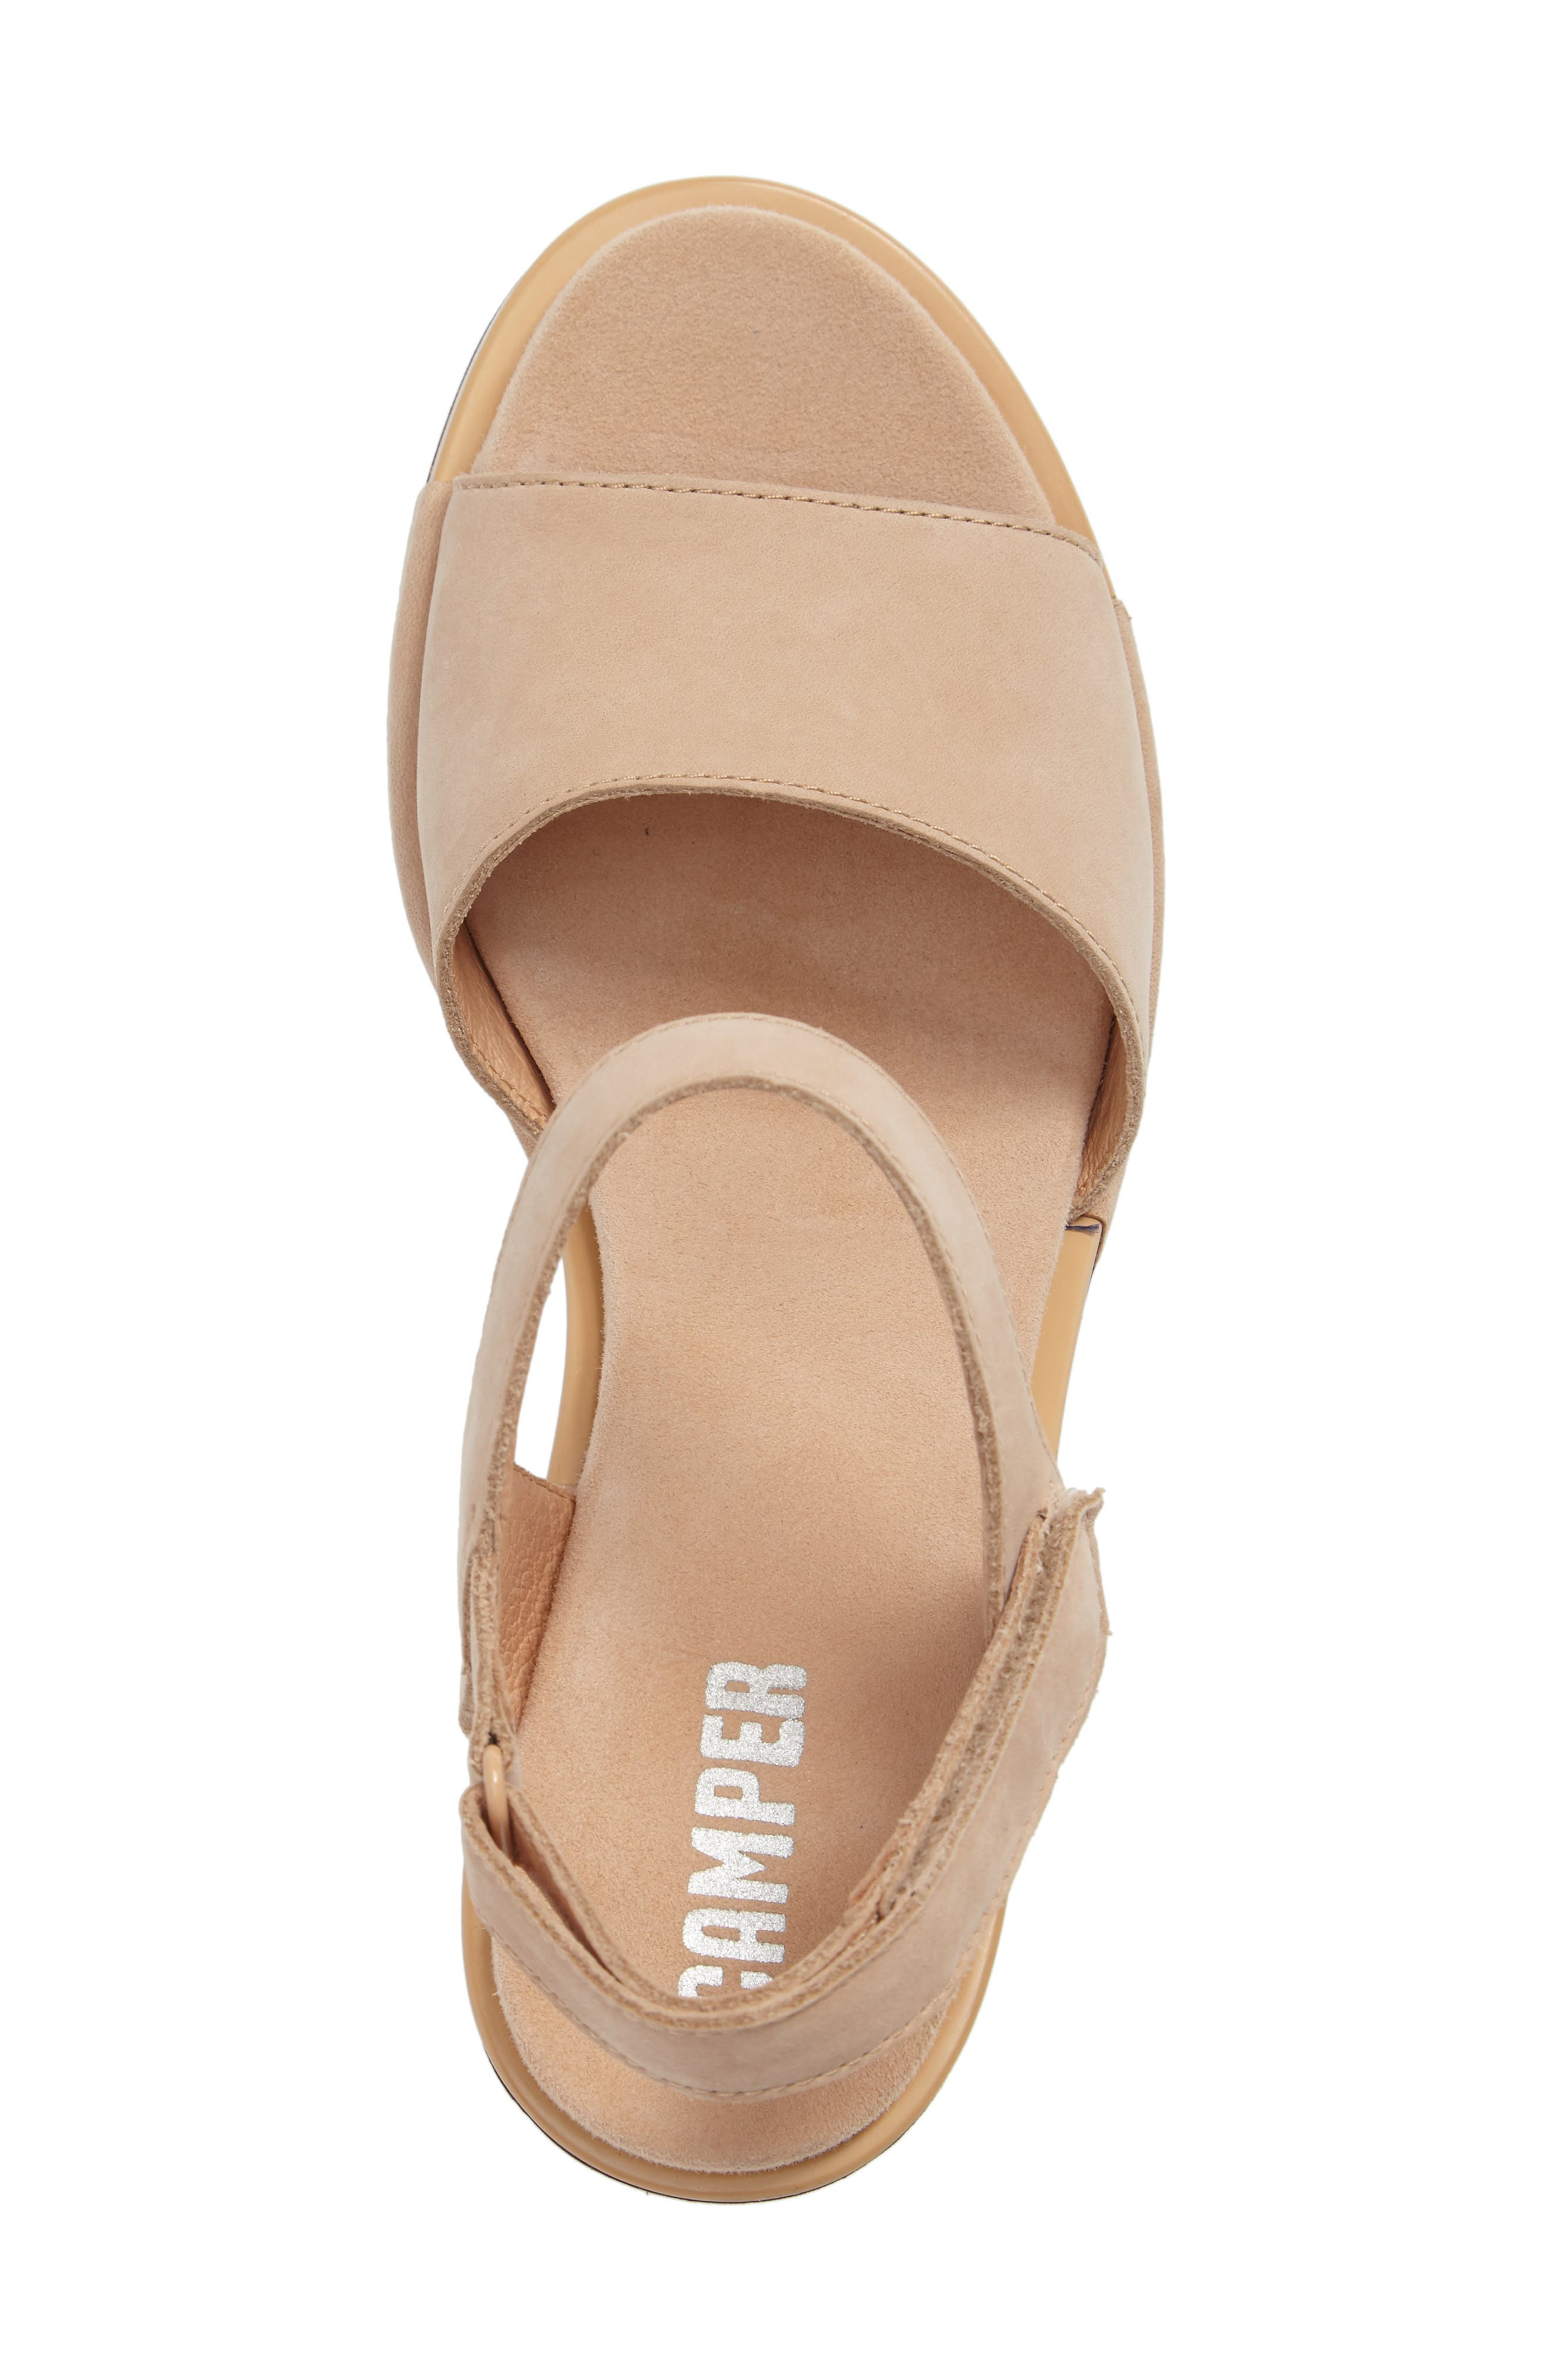 Ivy Ankle Strap Sandal,                             Alternate thumbnail 3, color,                             BEIGE LEATHER